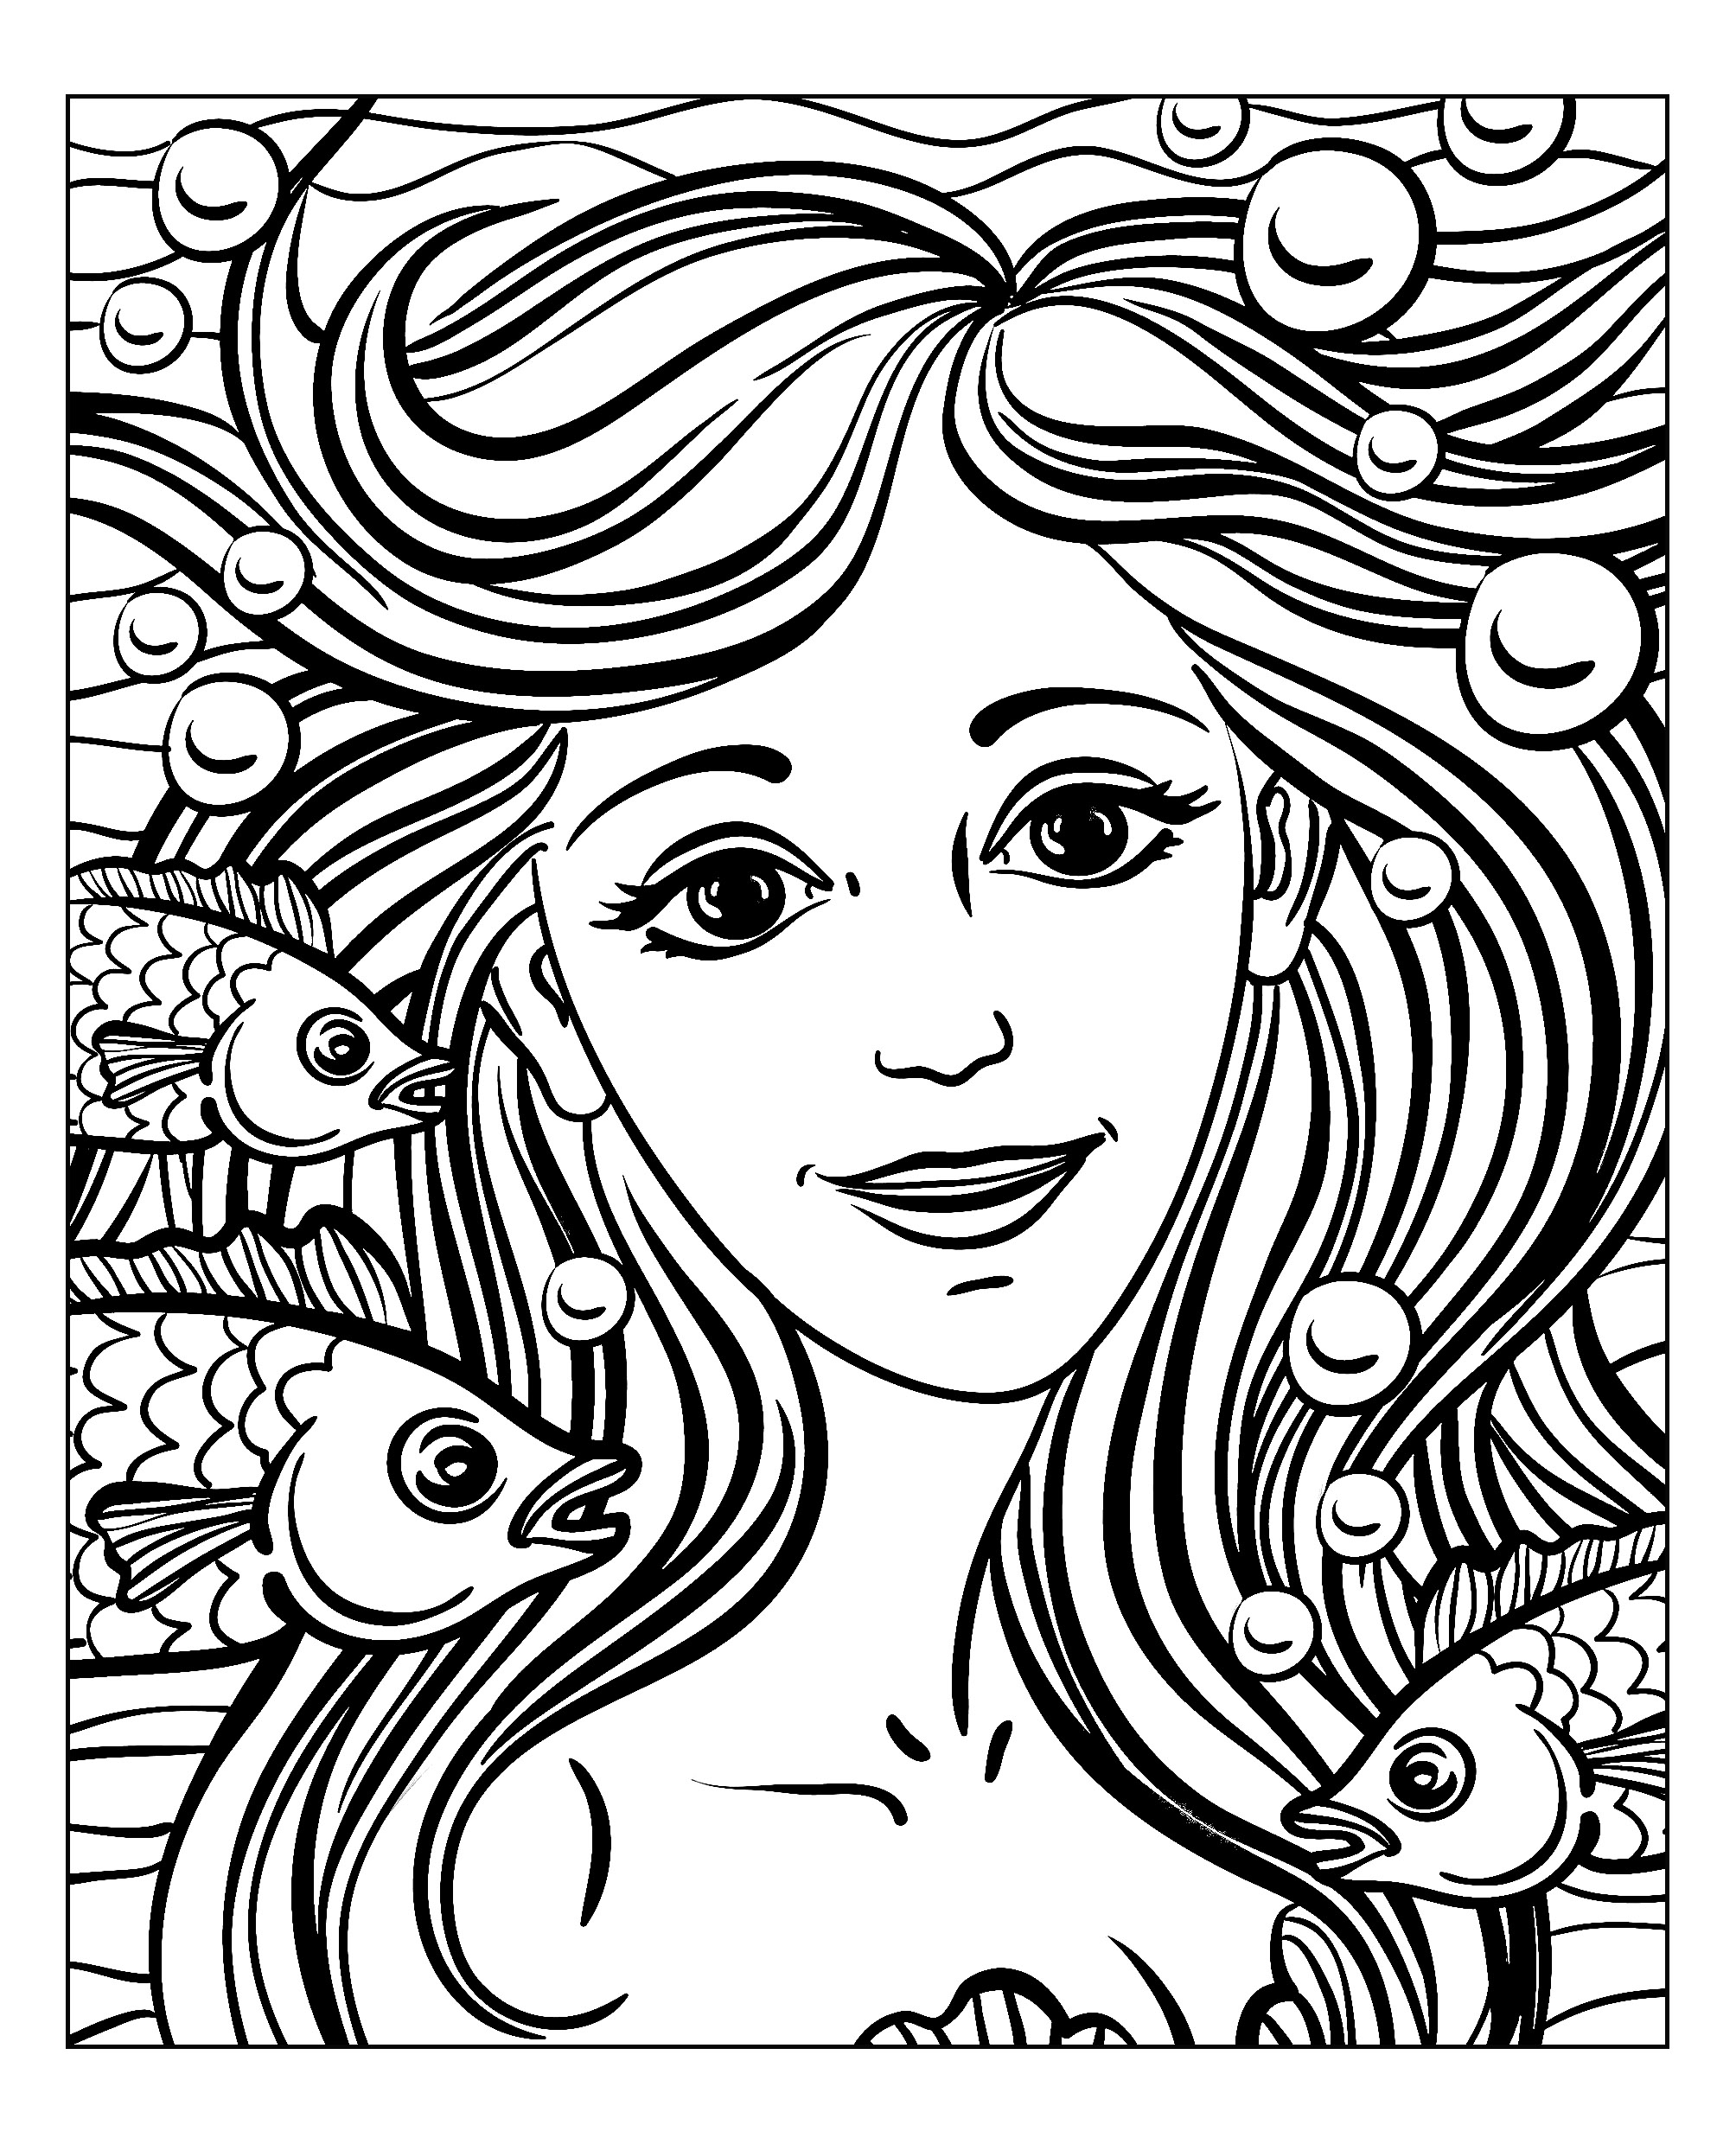 Rooster clipart face. Coloring pages faces woman